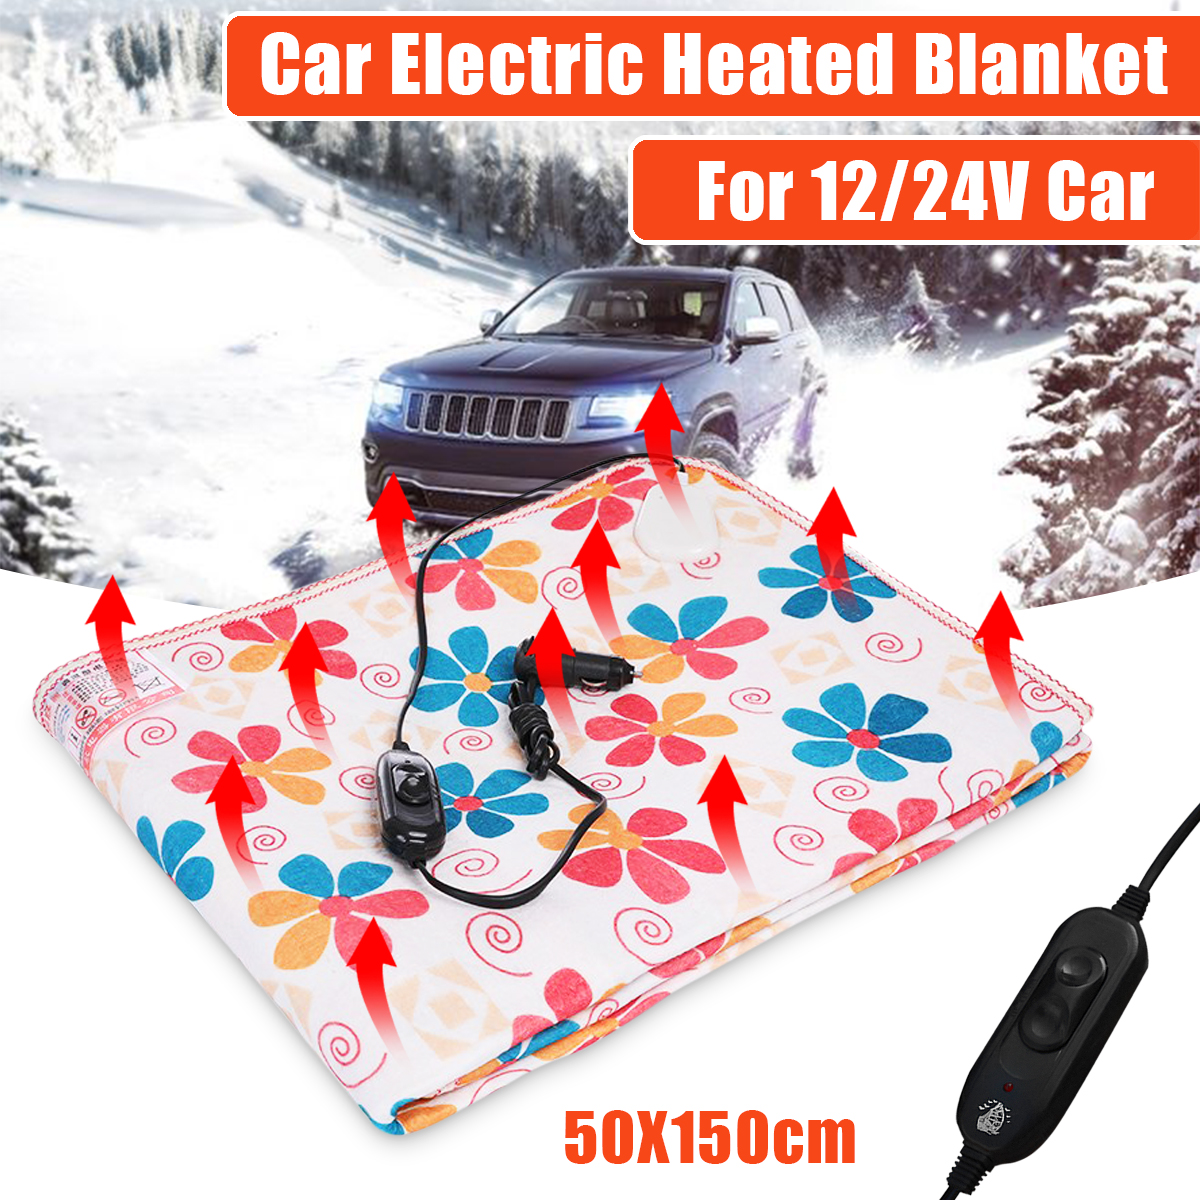 150X50cm Energy Saving Warm 12v Car Heating Blanket Autumn And Winter Electric Blanket Car Electric Heated Blanket